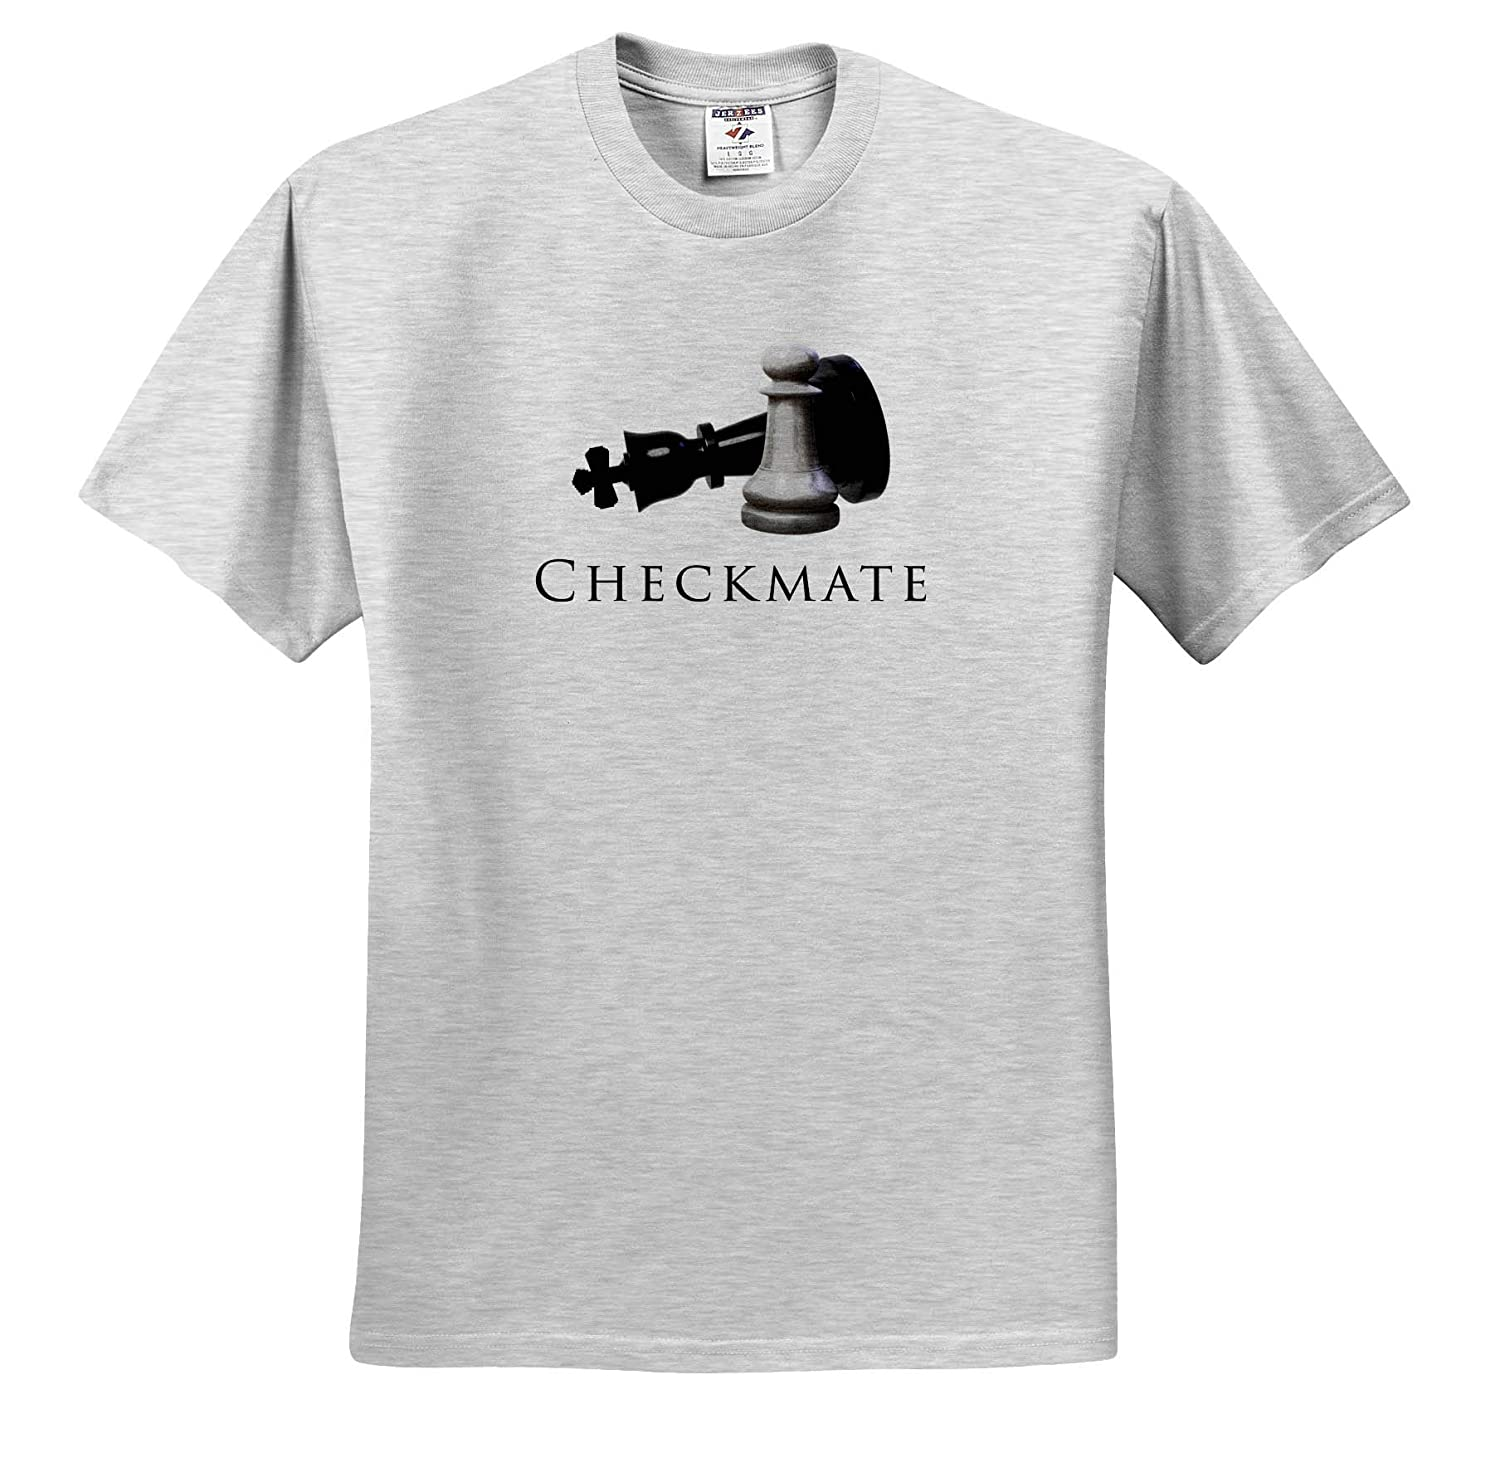 3dRose Macdonald Creative Studios Funny Chess Design - T-Shirts Checkmate Pawn Piece checkmating The Queen Chess